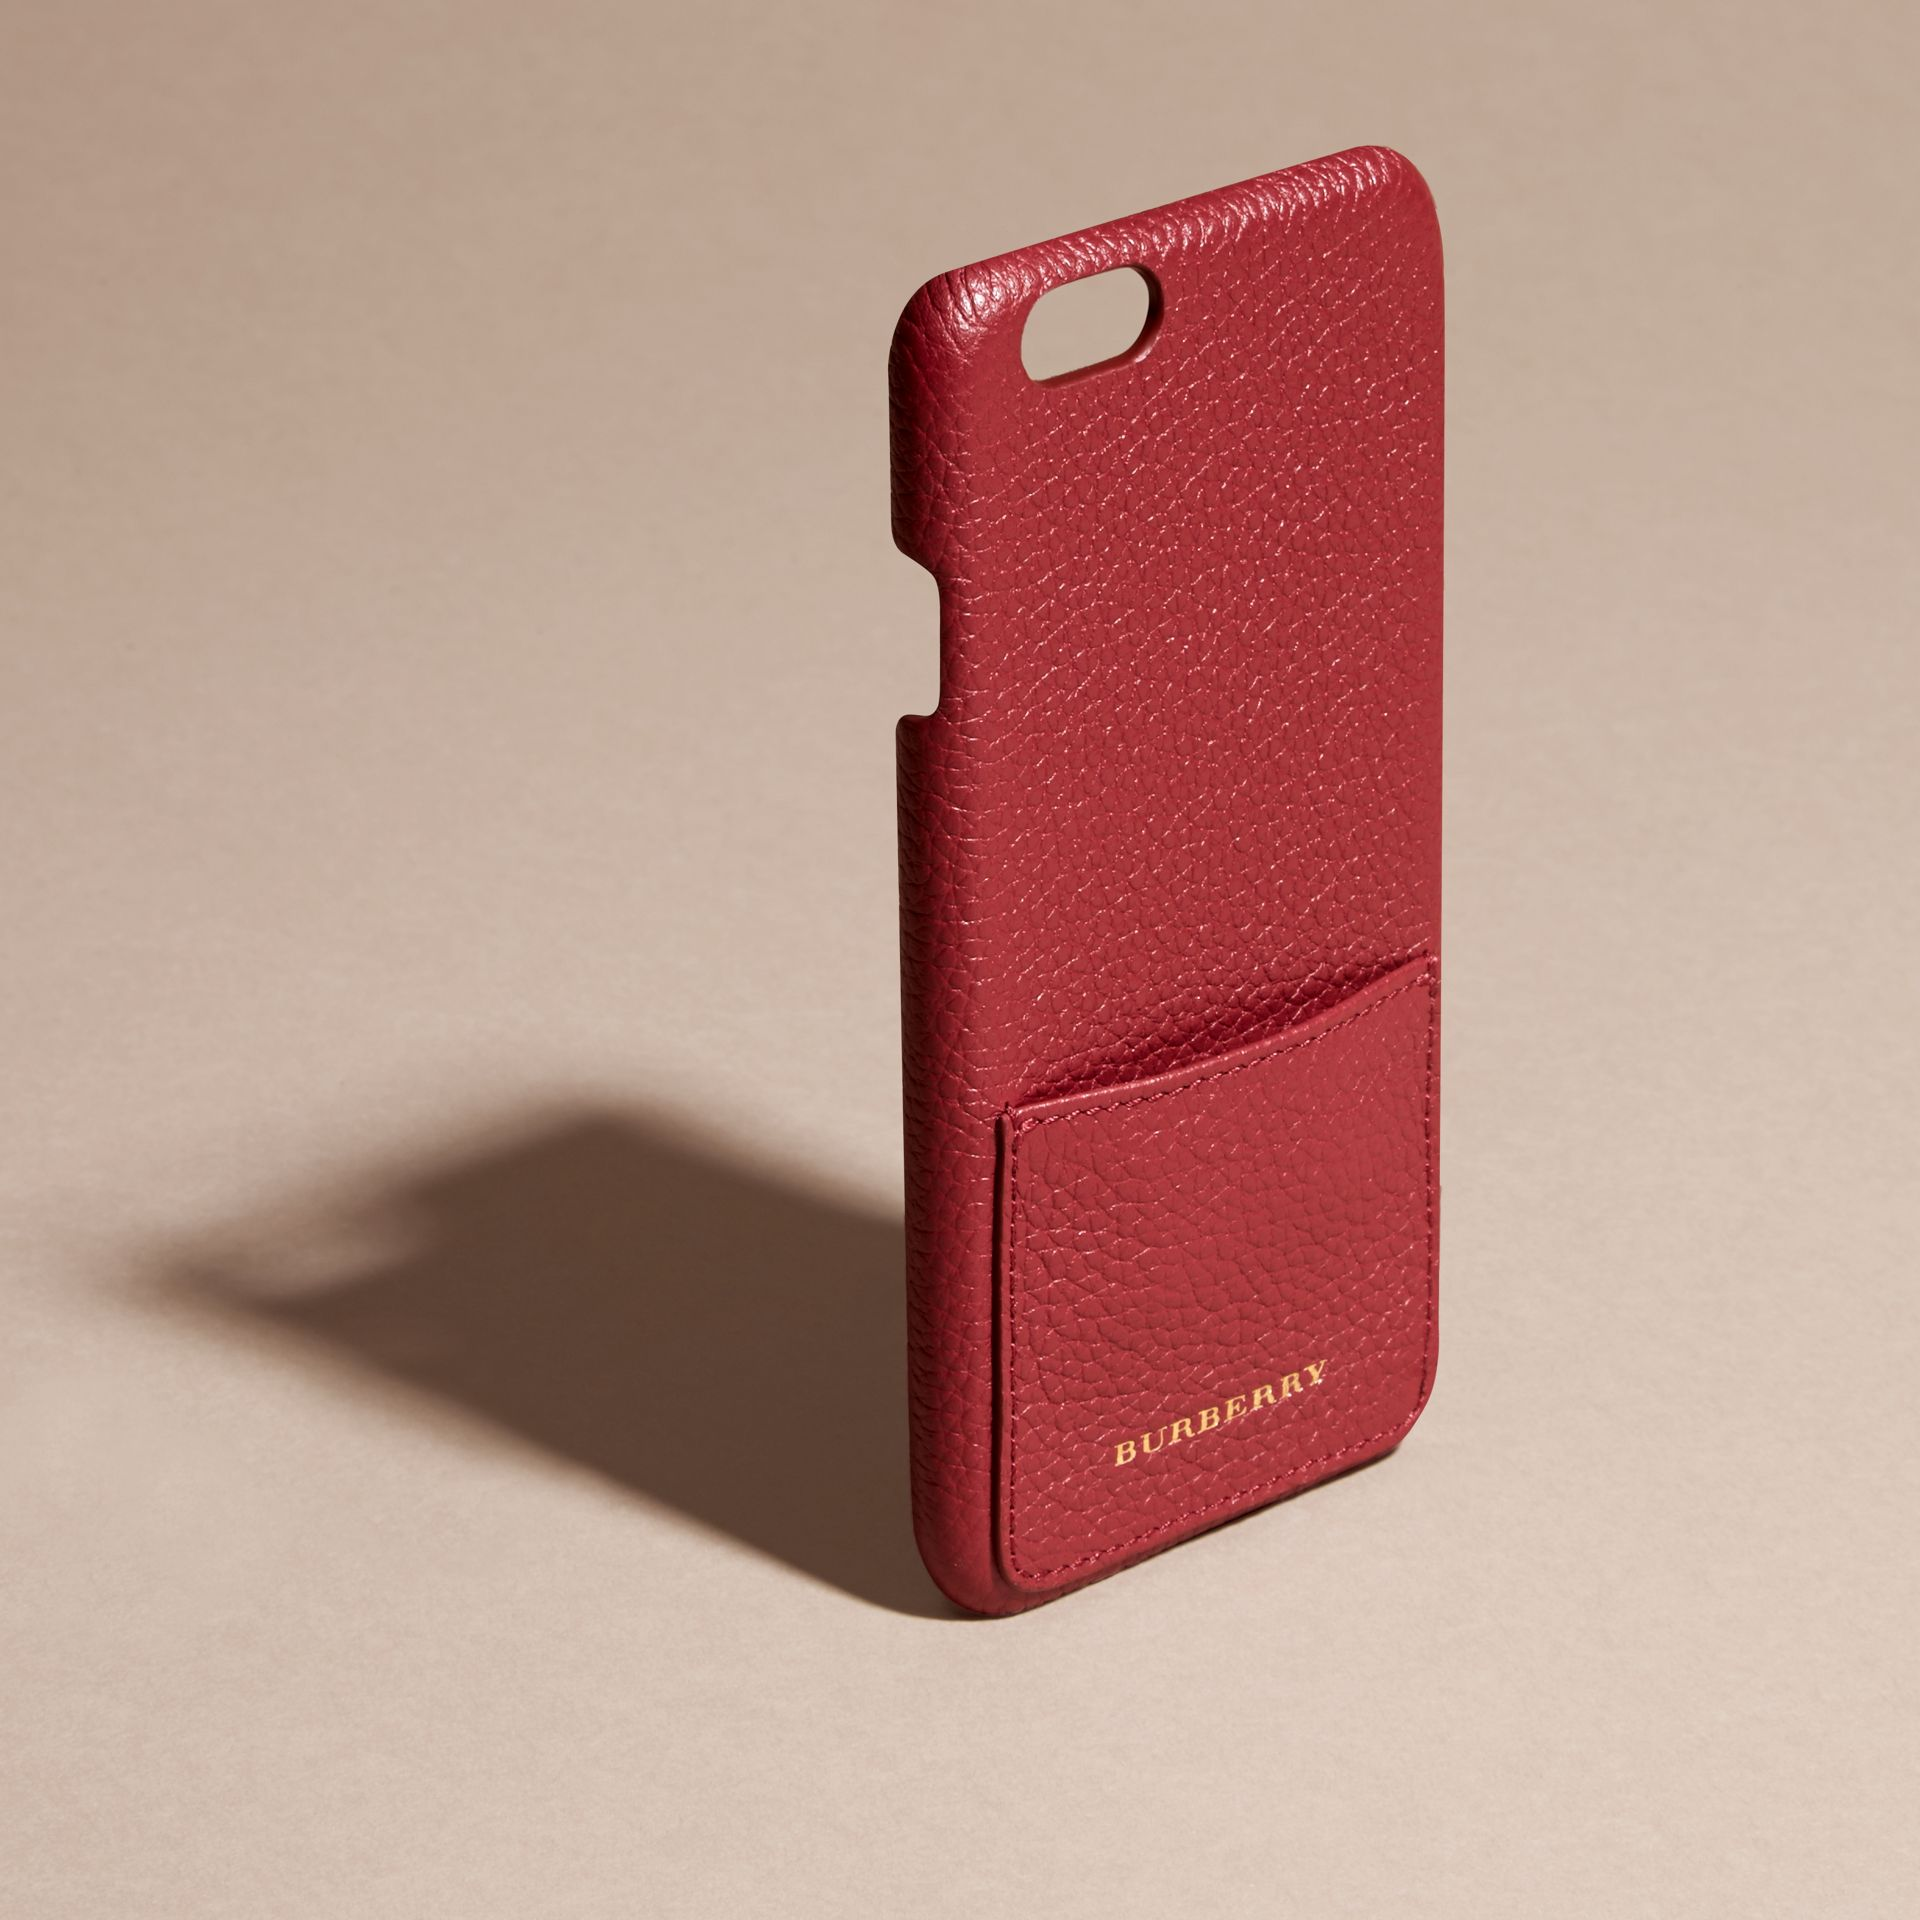 Grainy Leather iPhone 6 Case in Parade Red | Burberry - gallery image 3